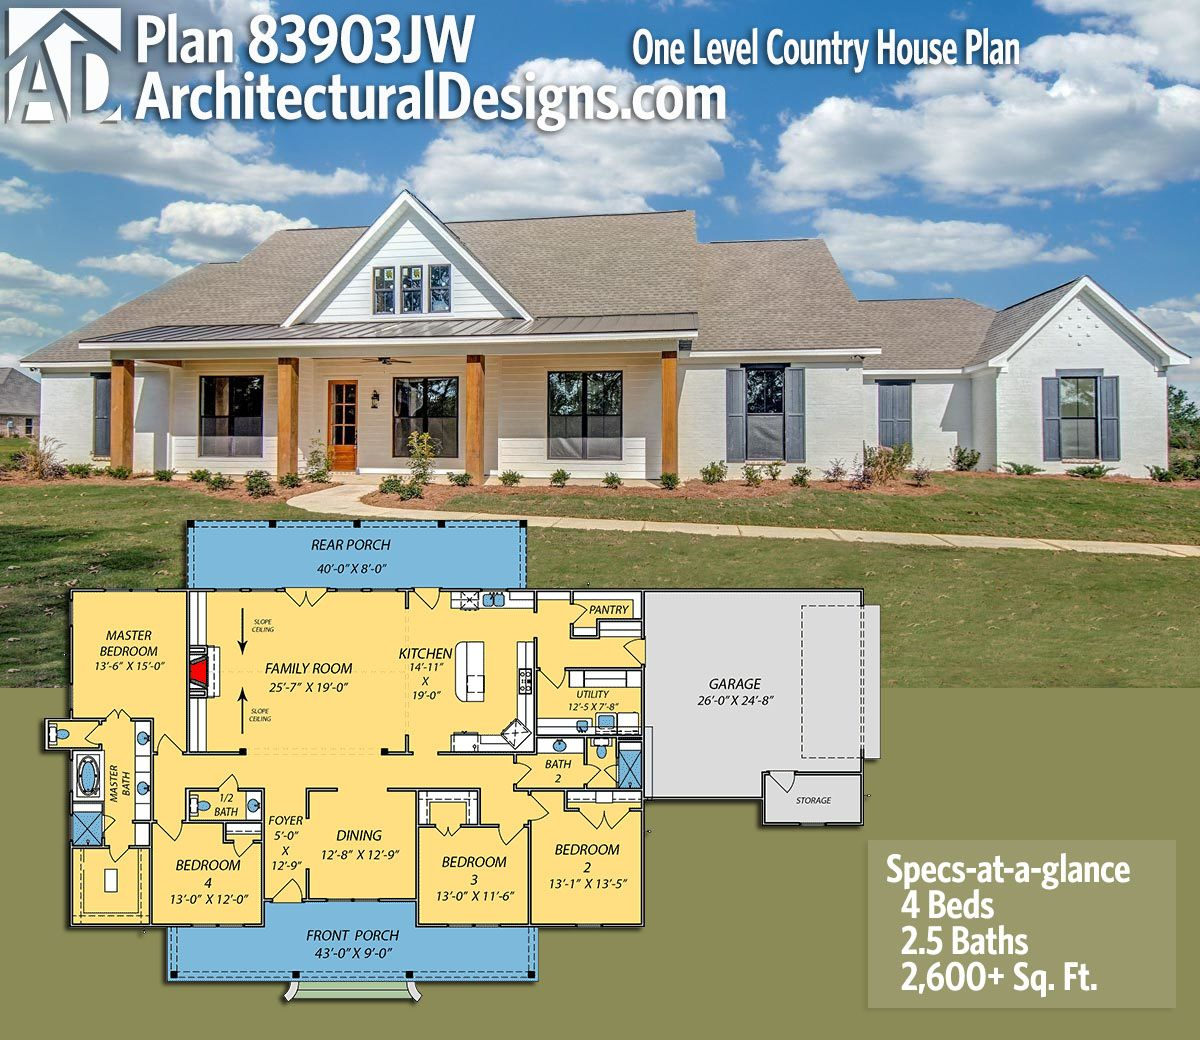 Plan 83903jw one level country house plan architectural for 1 level house plans